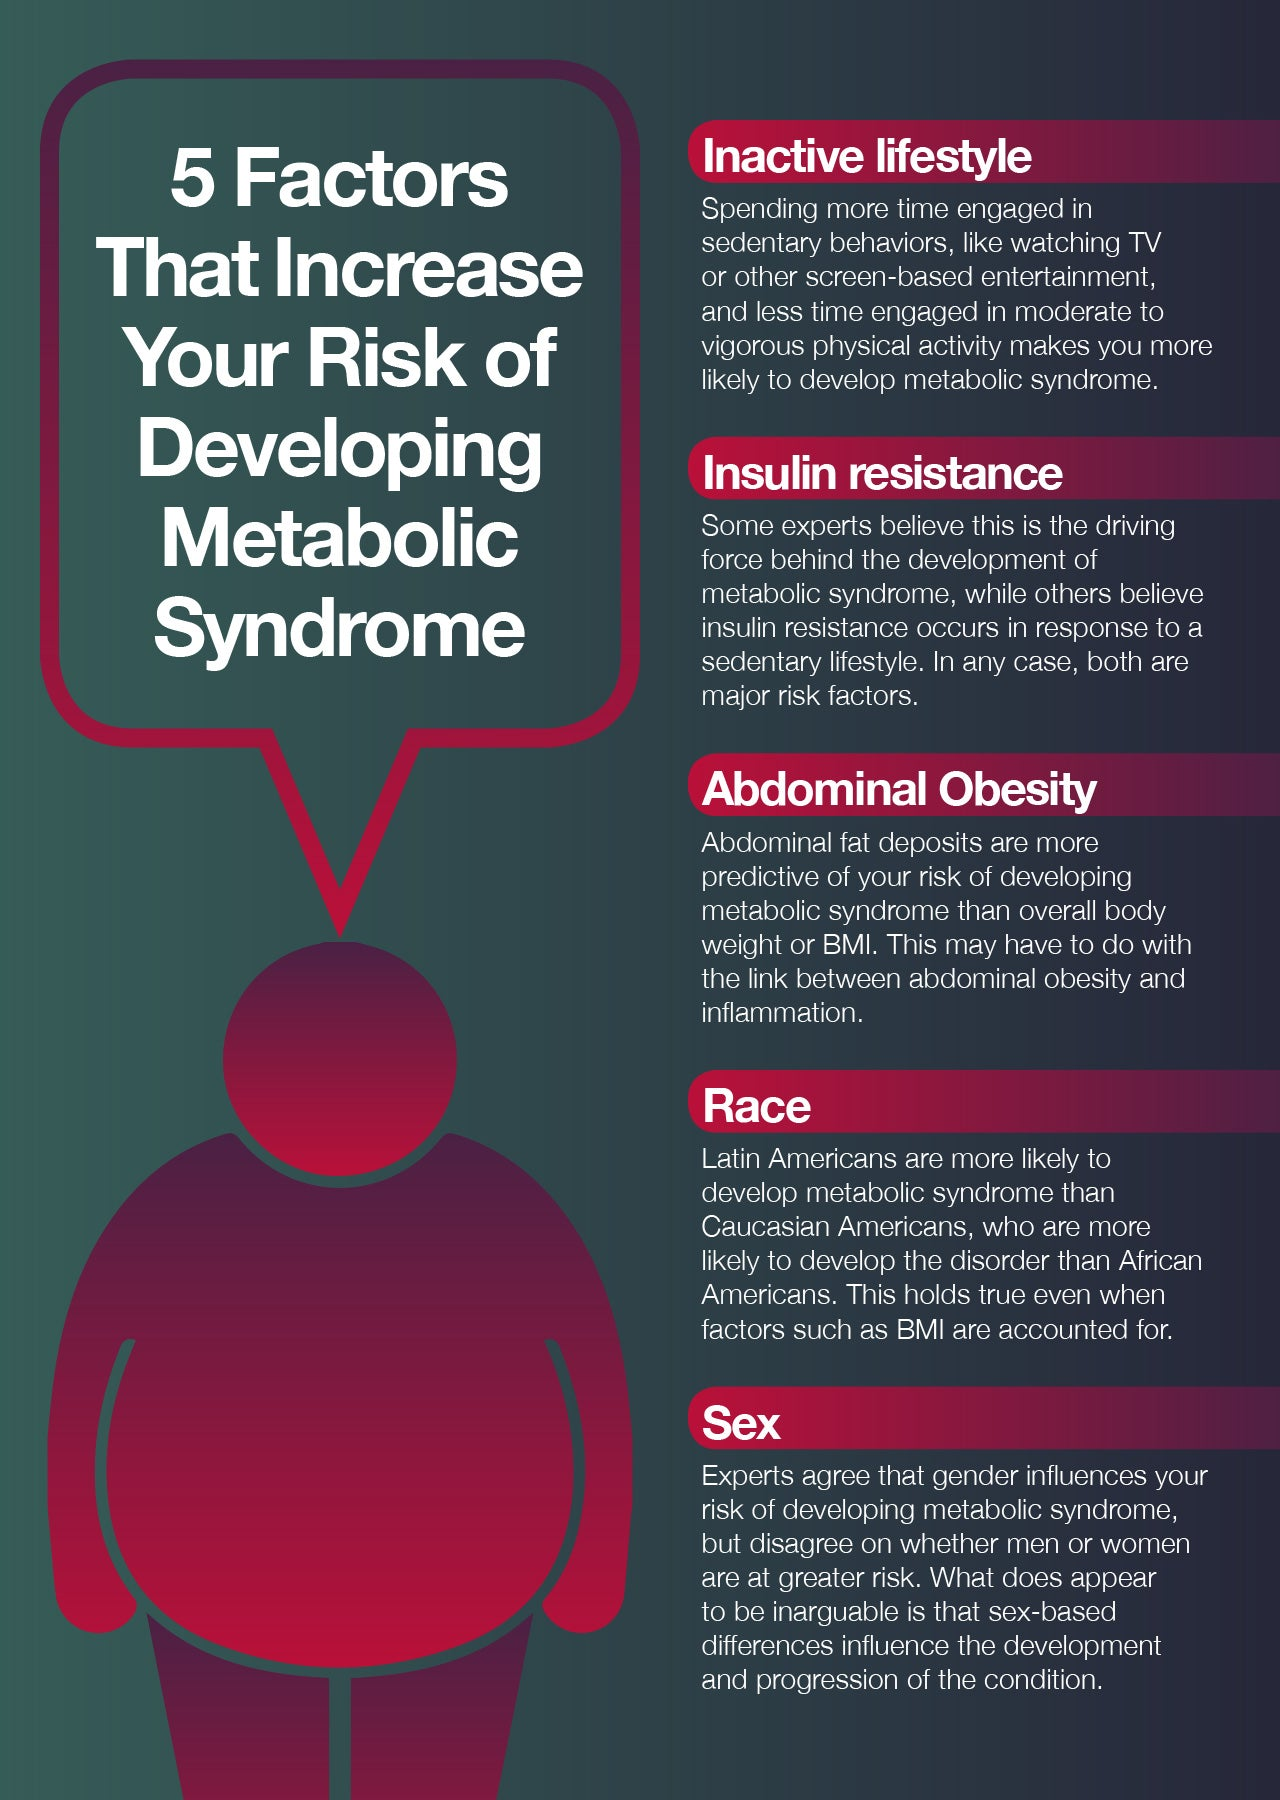 Metabolic syndrome is a cluster of conditions typically characterized by abdominal obesity, high cholesterol and triglycerides, high blood pressure, and insulin resistance. Certain demographics are at higher metabolic syndrome risk than others.